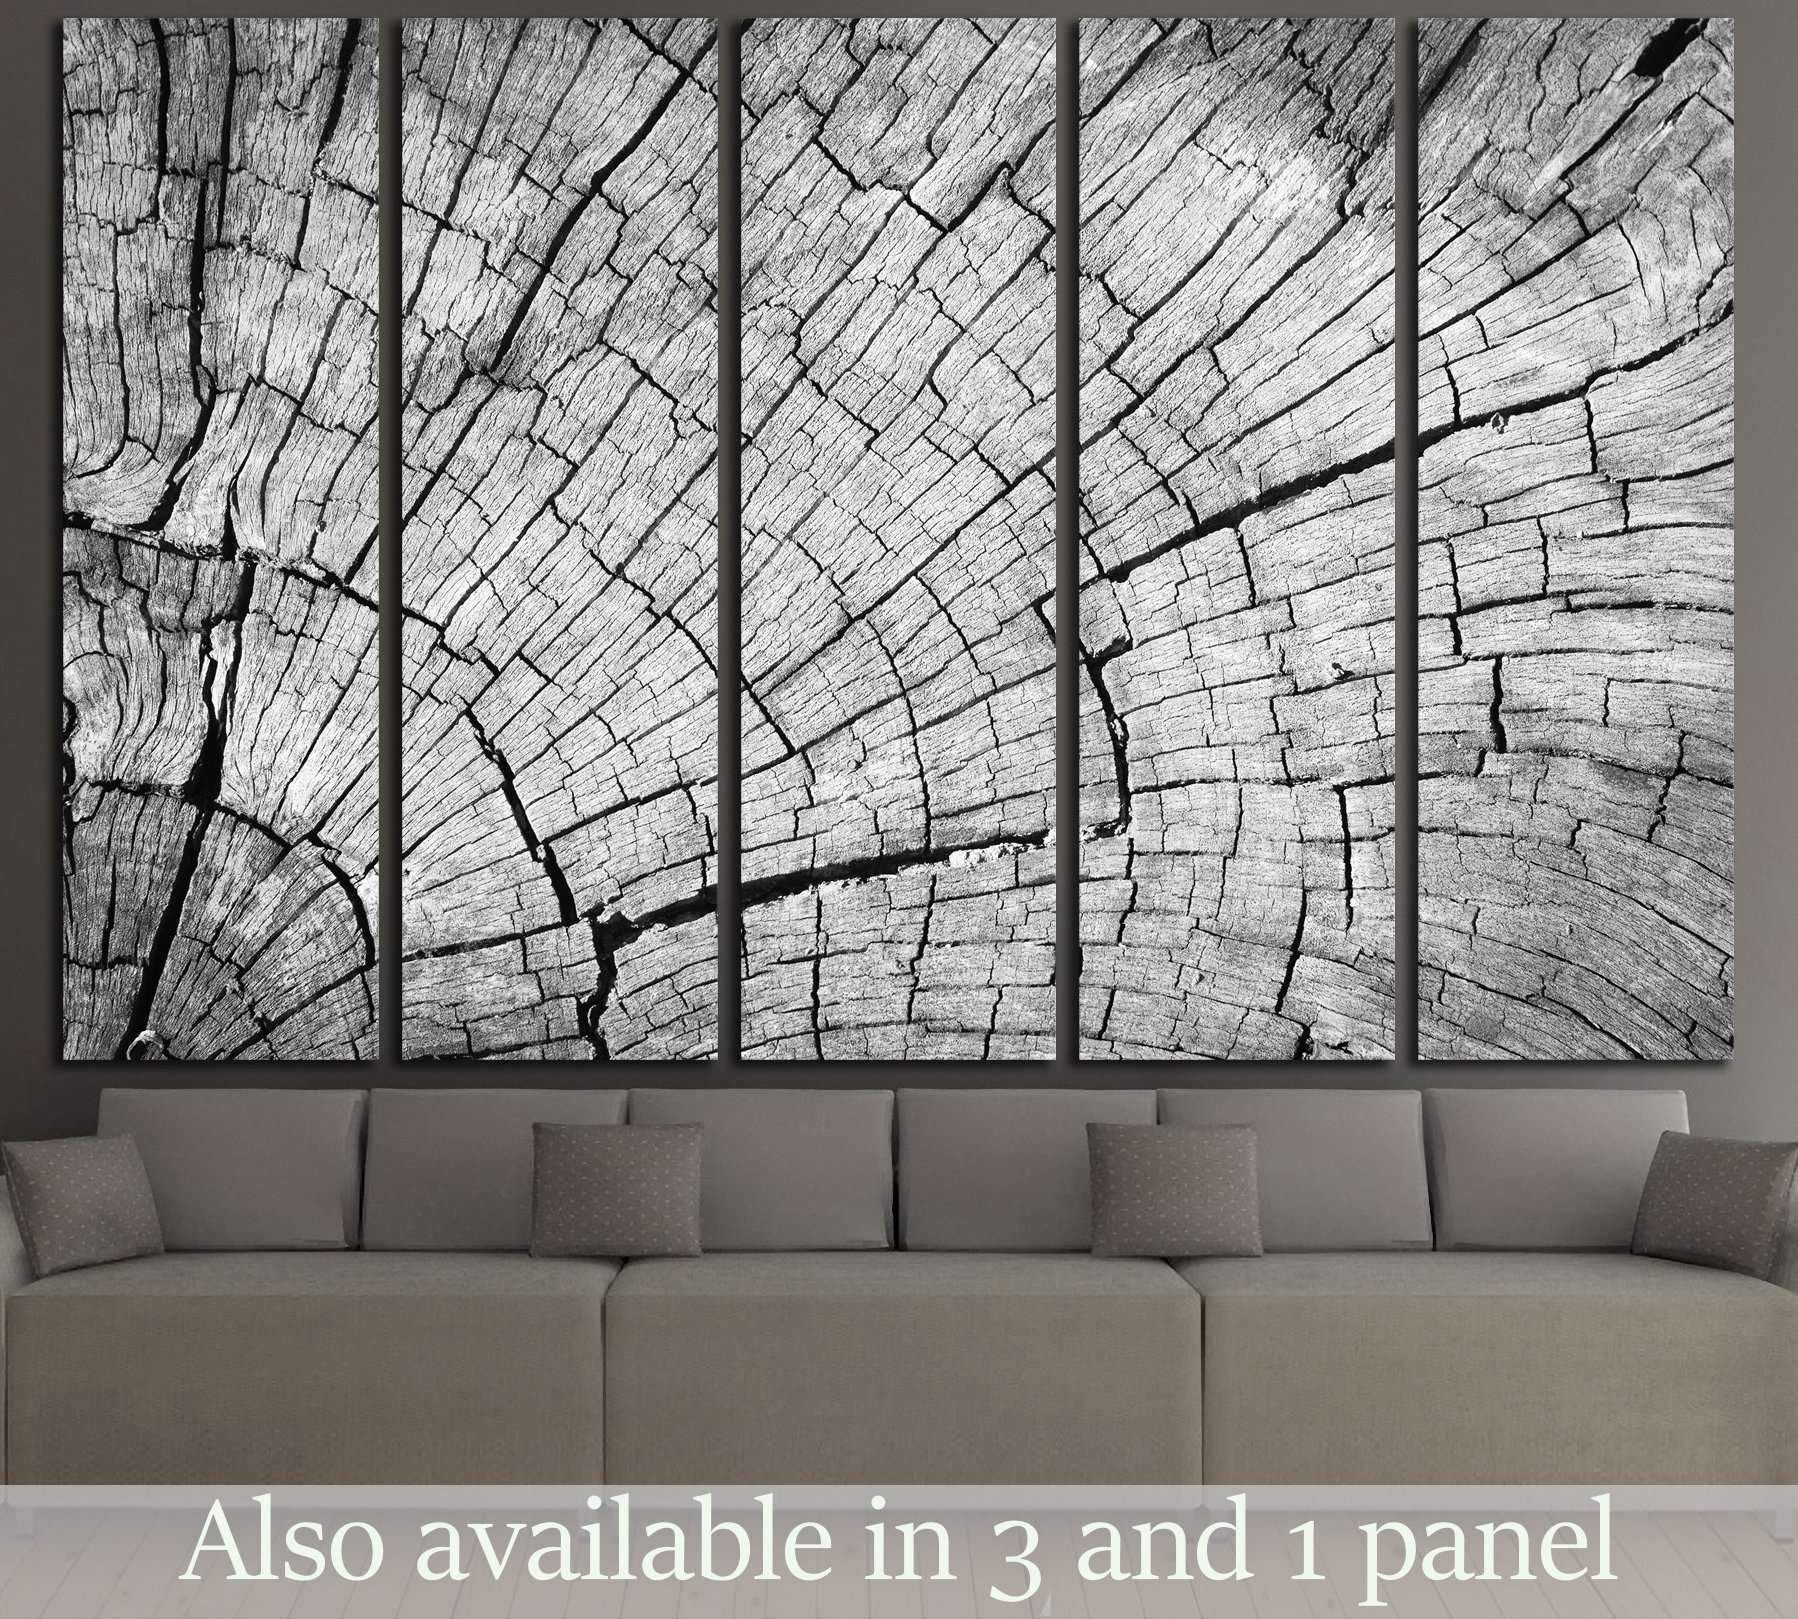 Old Gray cracked wood texture background №2836 Ready to Hang Canvas Print #woodtexturebackground